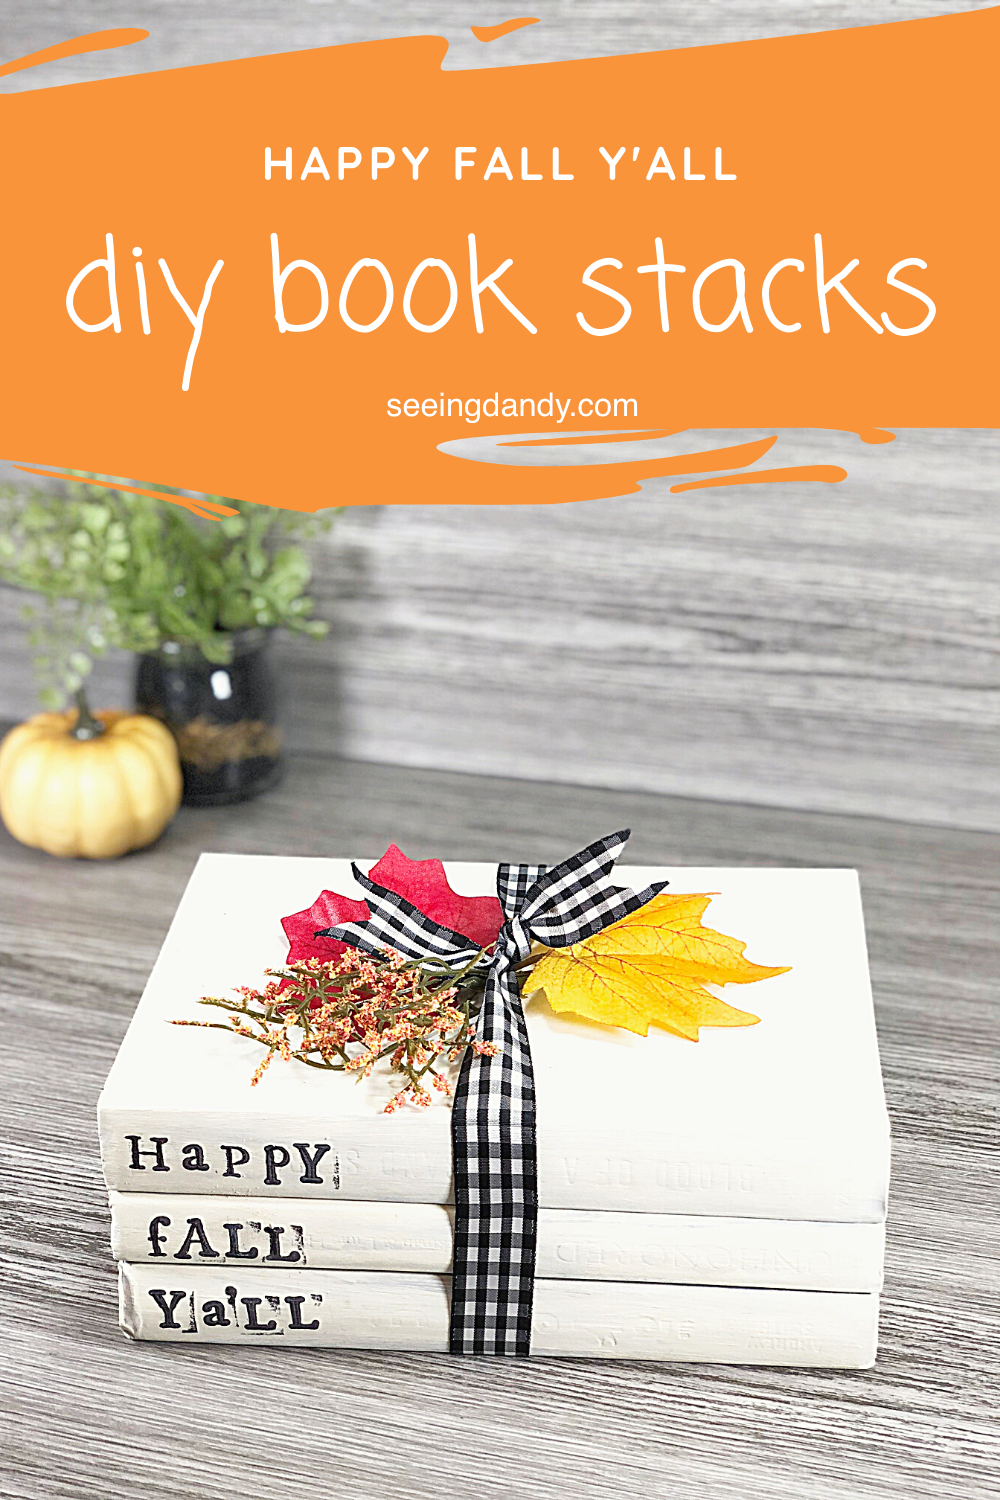 easy diy stamped book stacks, fall decor, fall decorating, happy fall yall, fall leaves, yellow pumpkin, farmhouse style